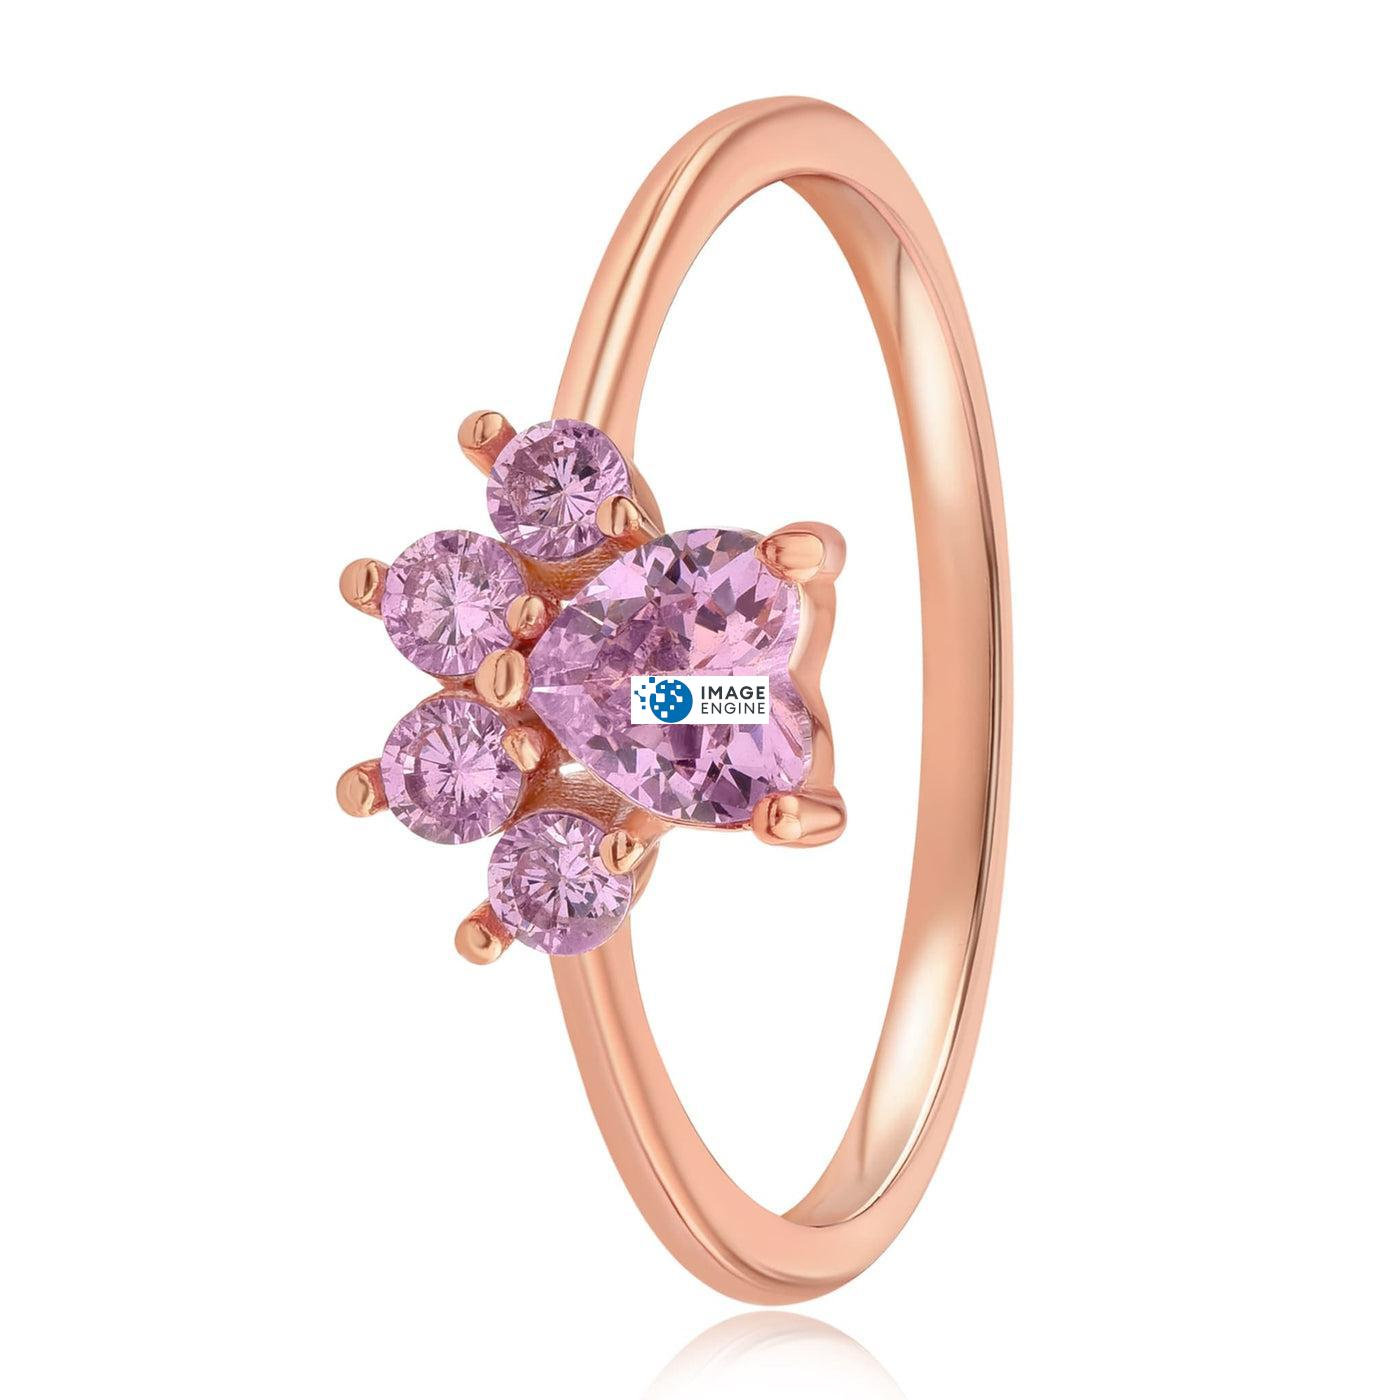 Bella Paw Rose Quartz Ring - Side View - 18K Rose Gold Vermeil